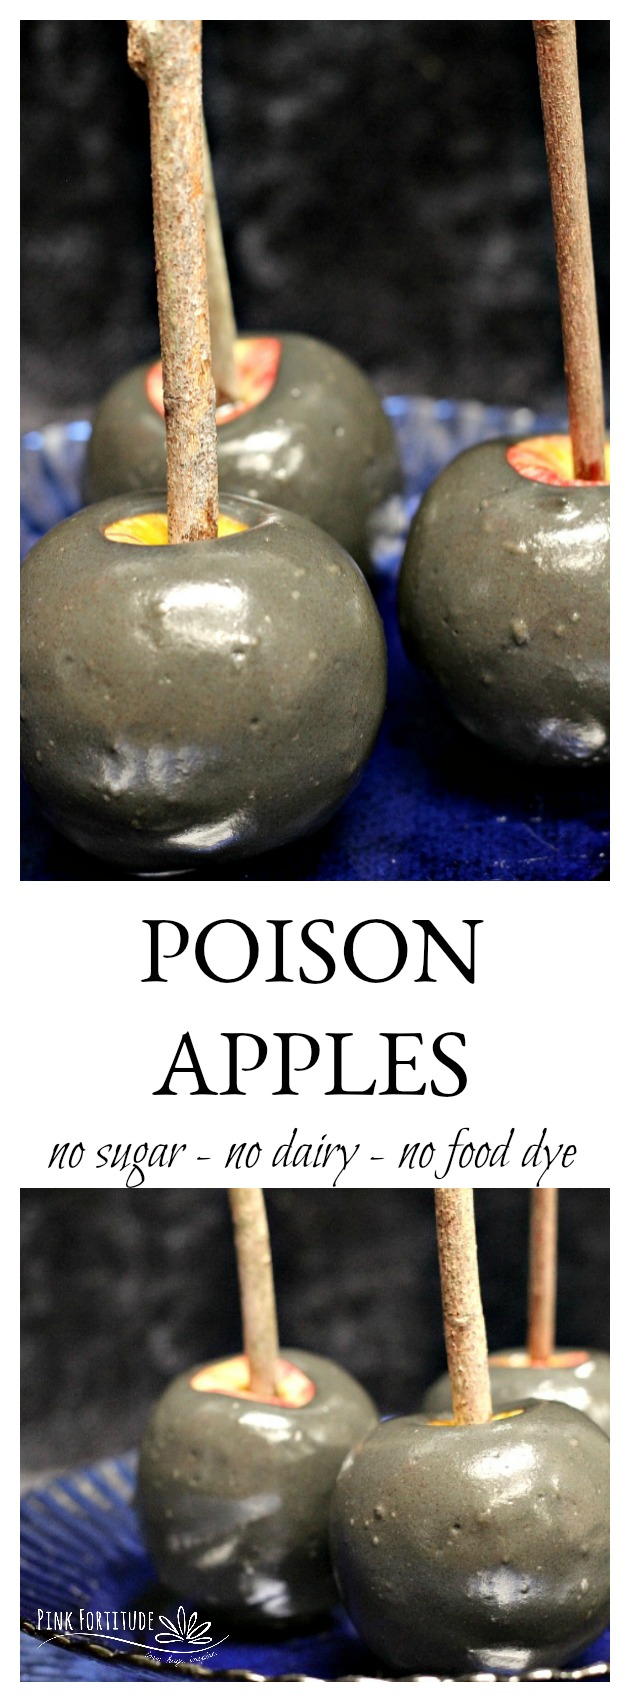 Poison apples are a fun Halloween food to have at your party. But the sugar and high fructose corn syrup and black food dye? I'll take my apple without all of the poison, thank you! If you want to make an all-natural treat worthy of the best Halloween party, here's how...